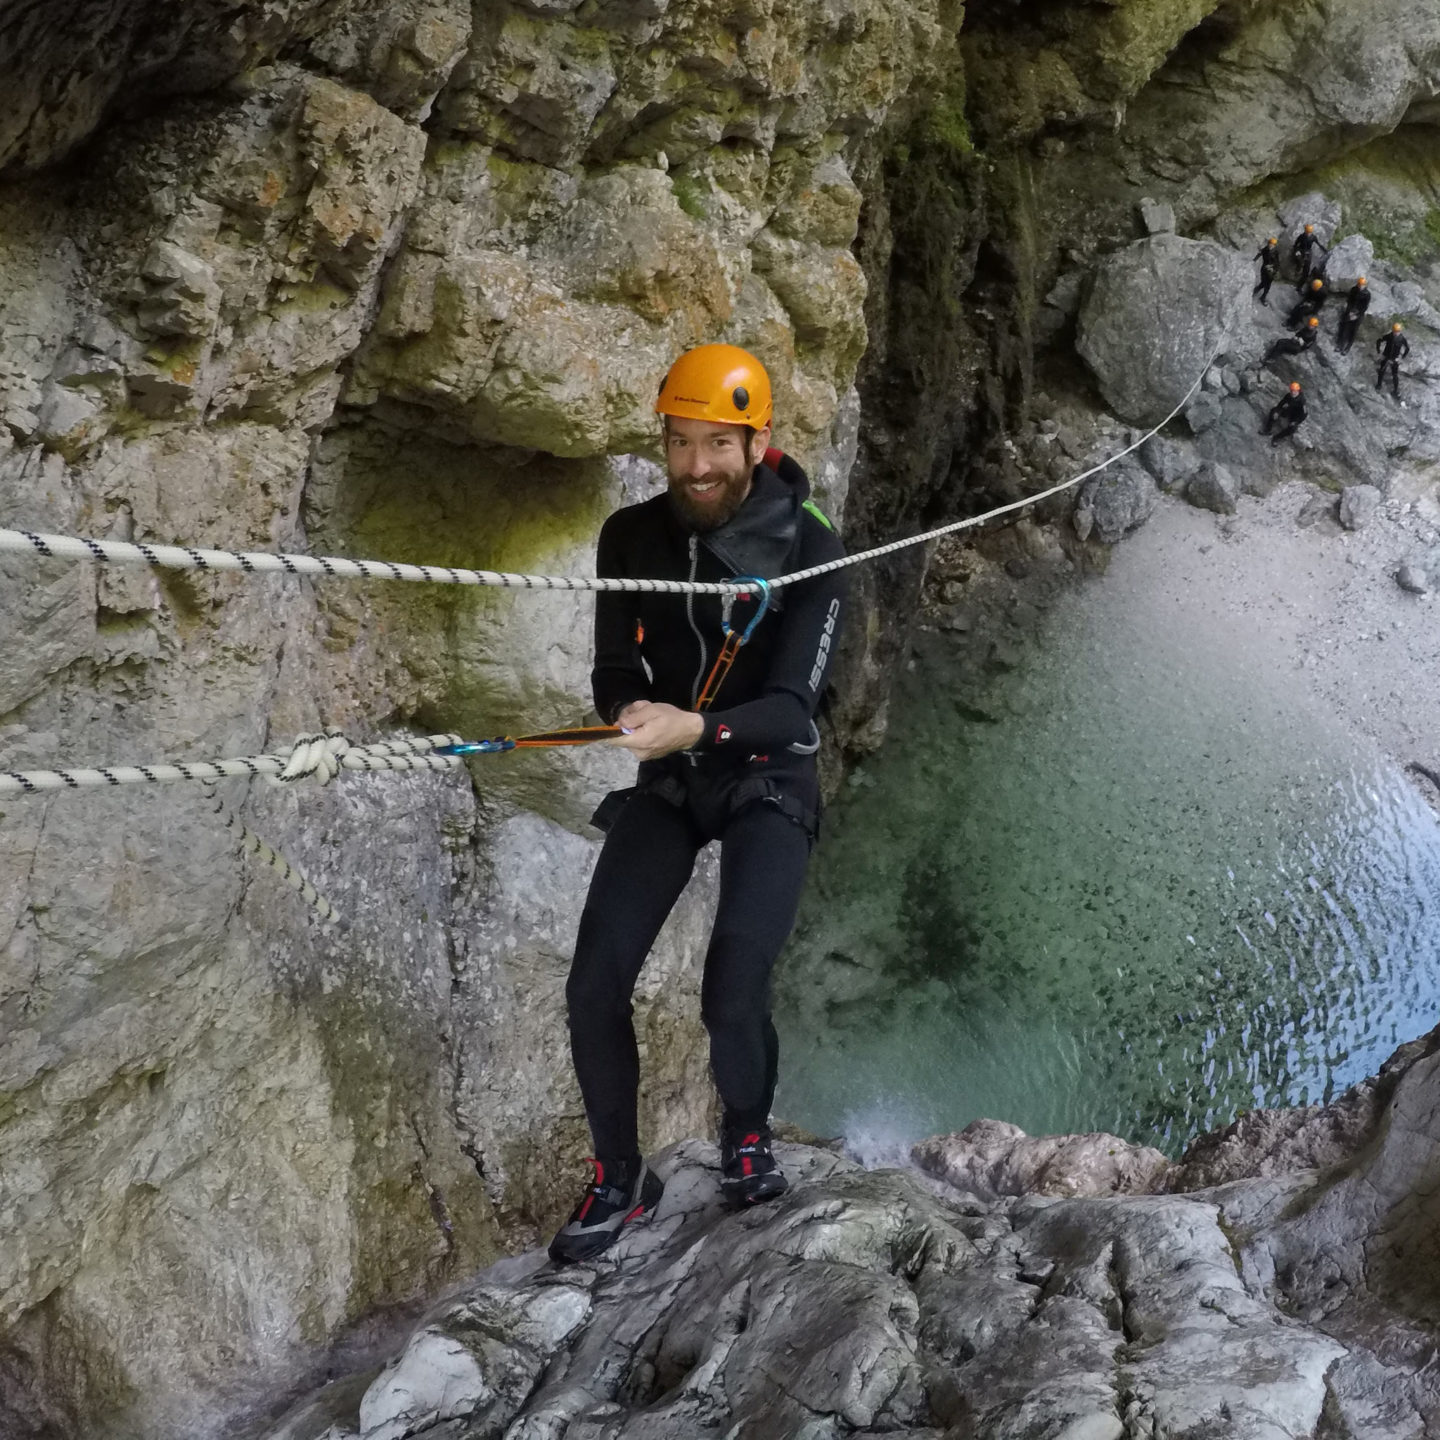 Canyoning and White Water Rafting in Slovenia